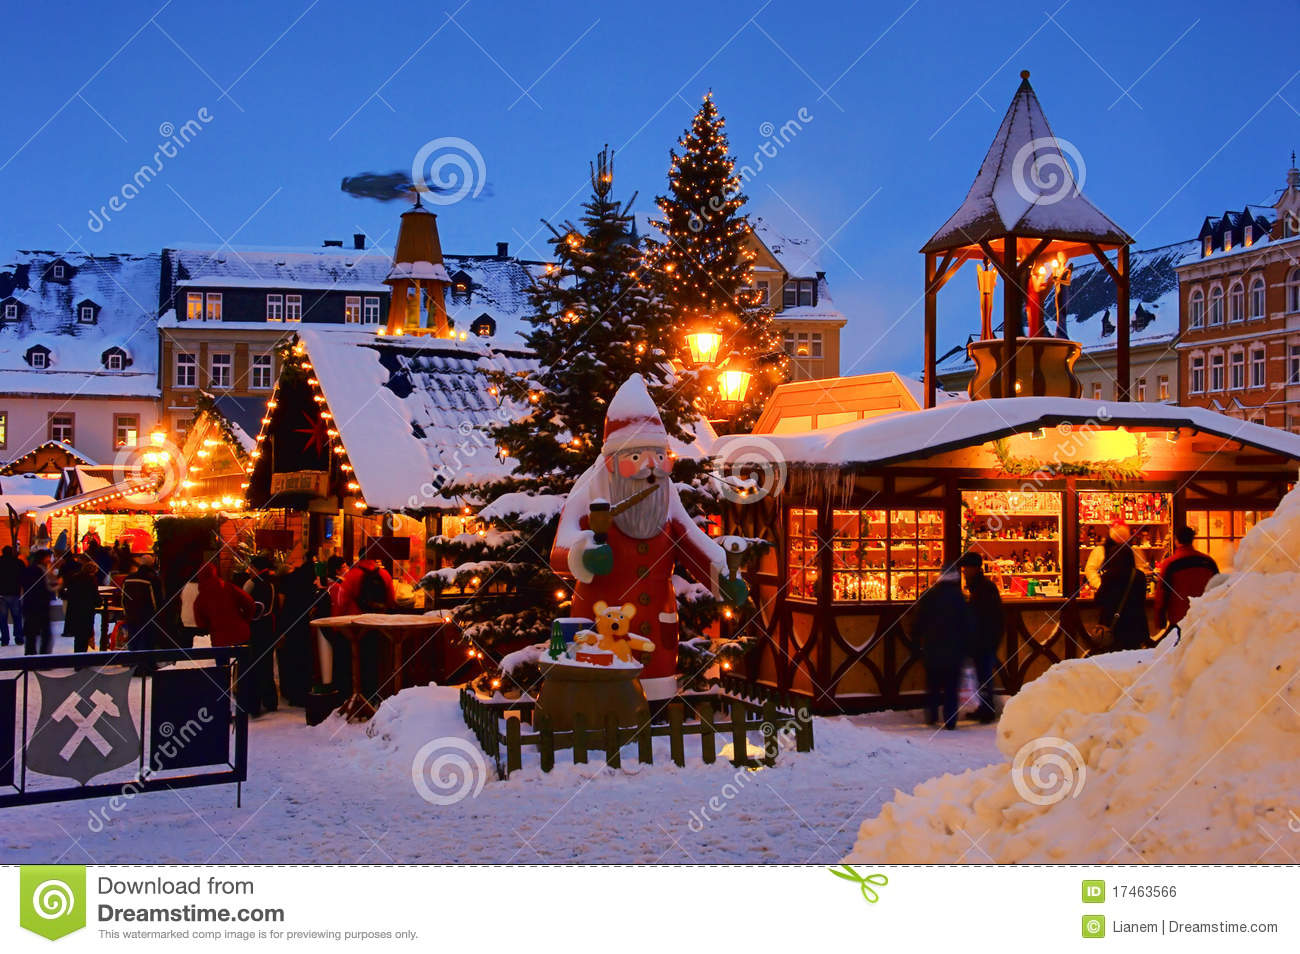 annaberg buchholz weihnachtsmarkt stockfoto bild von. Black Bedroom Furniture Sets. Home Design Ideas